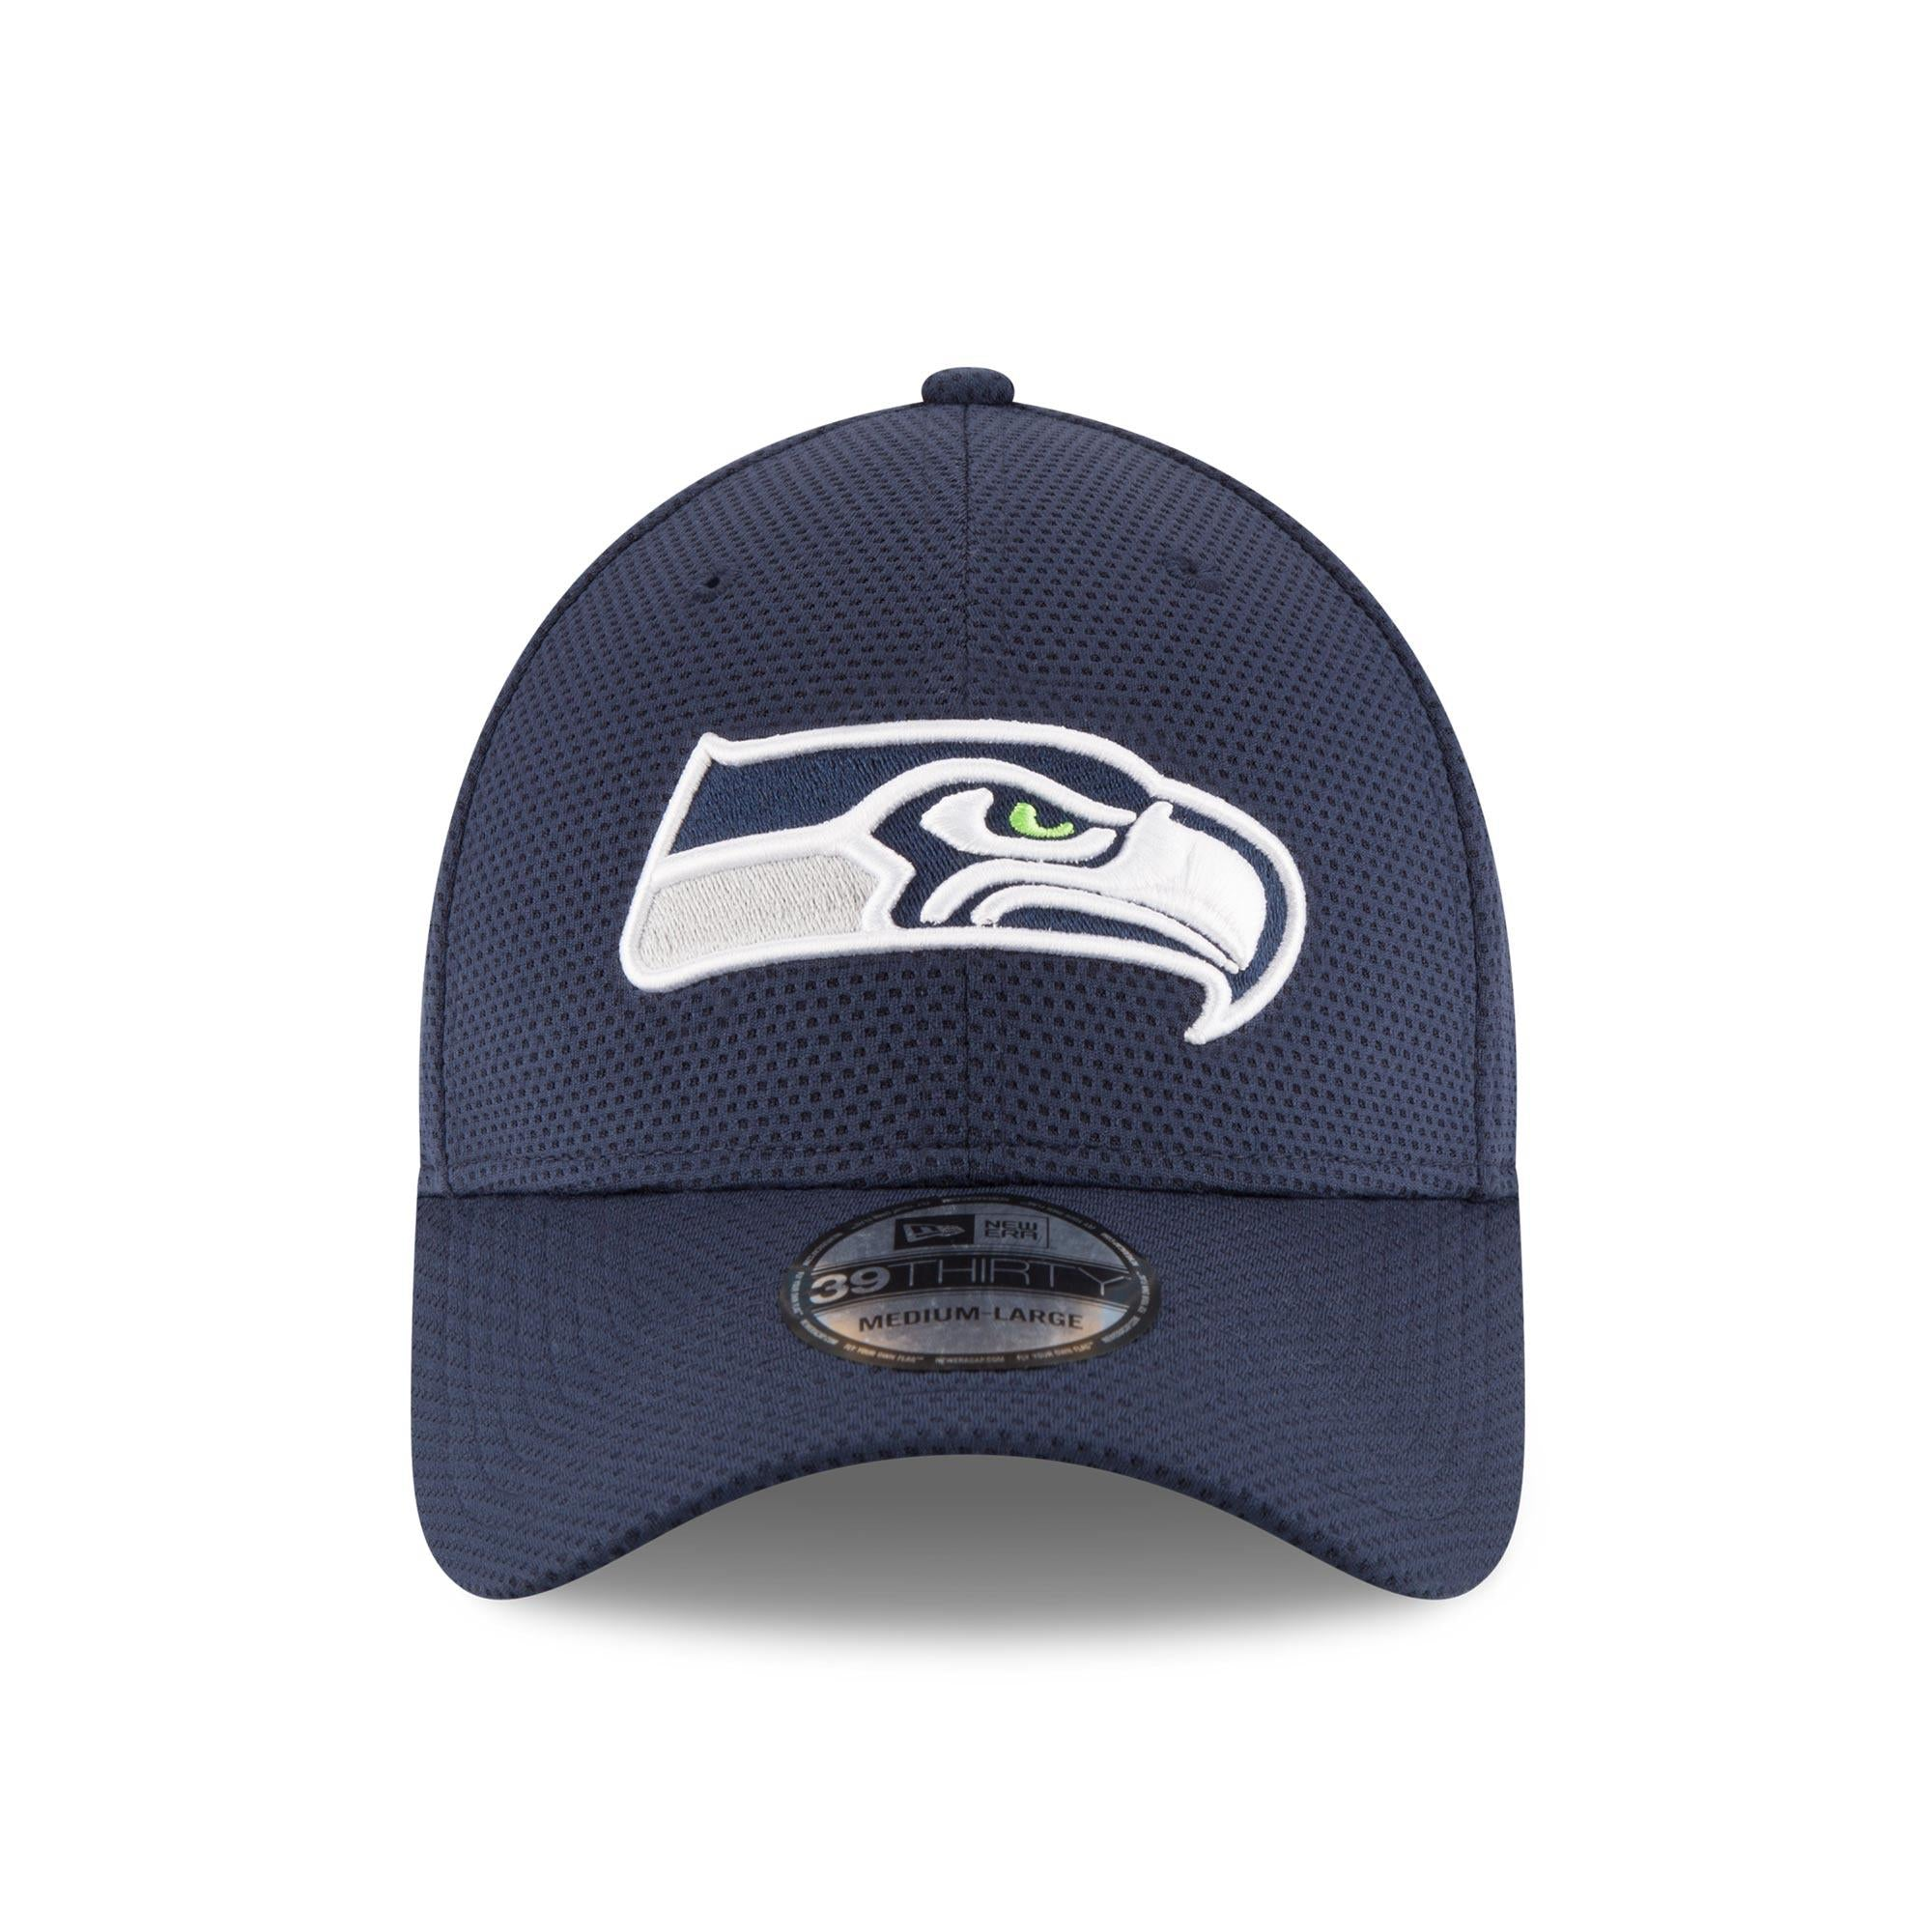 New Era Nfl 39Thirty Casquette/Cap Seahawks.